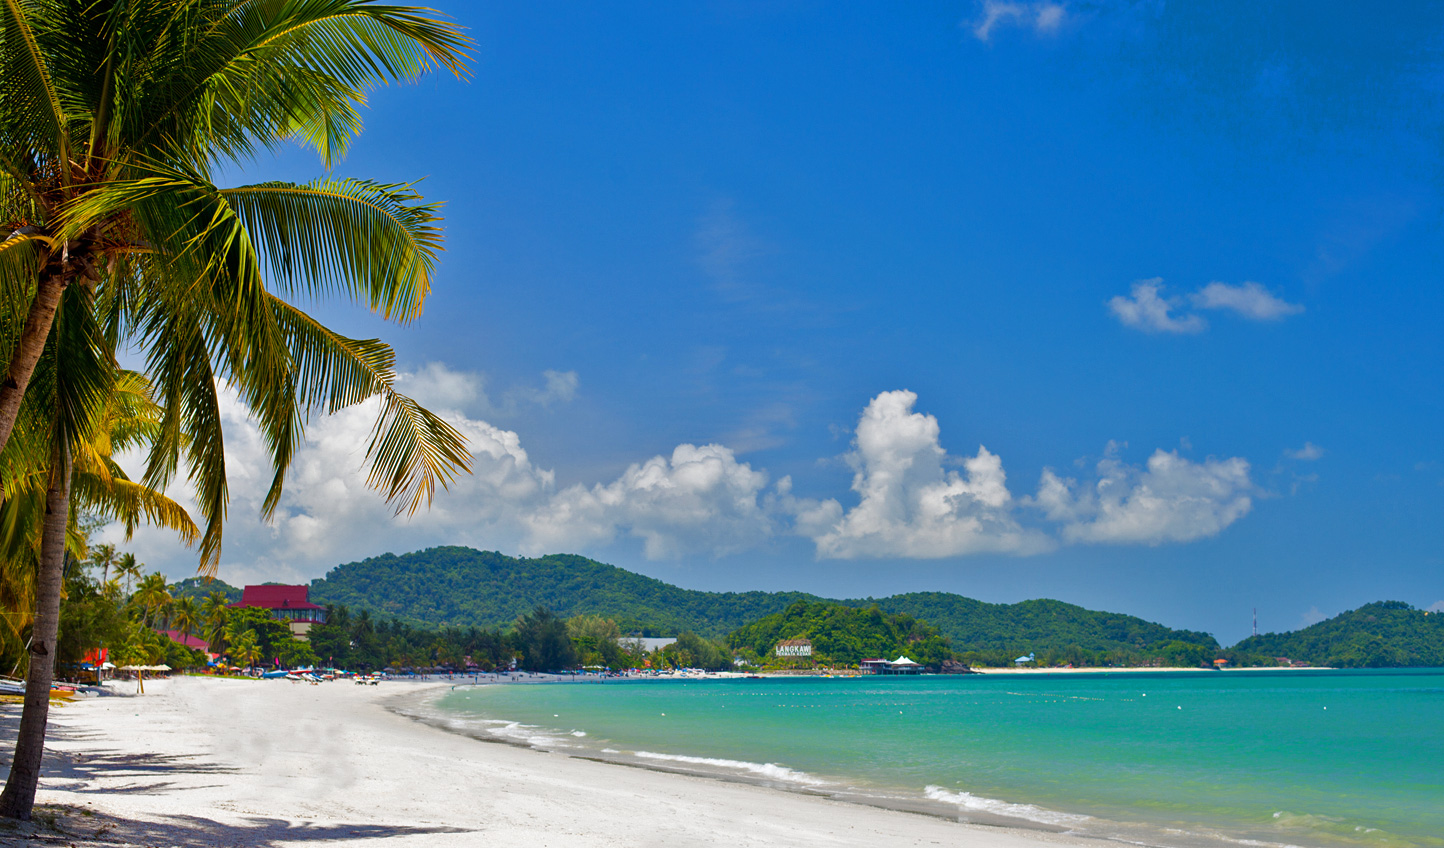 Gentle azure waves lap onto the fine sand beaches of Langkawi